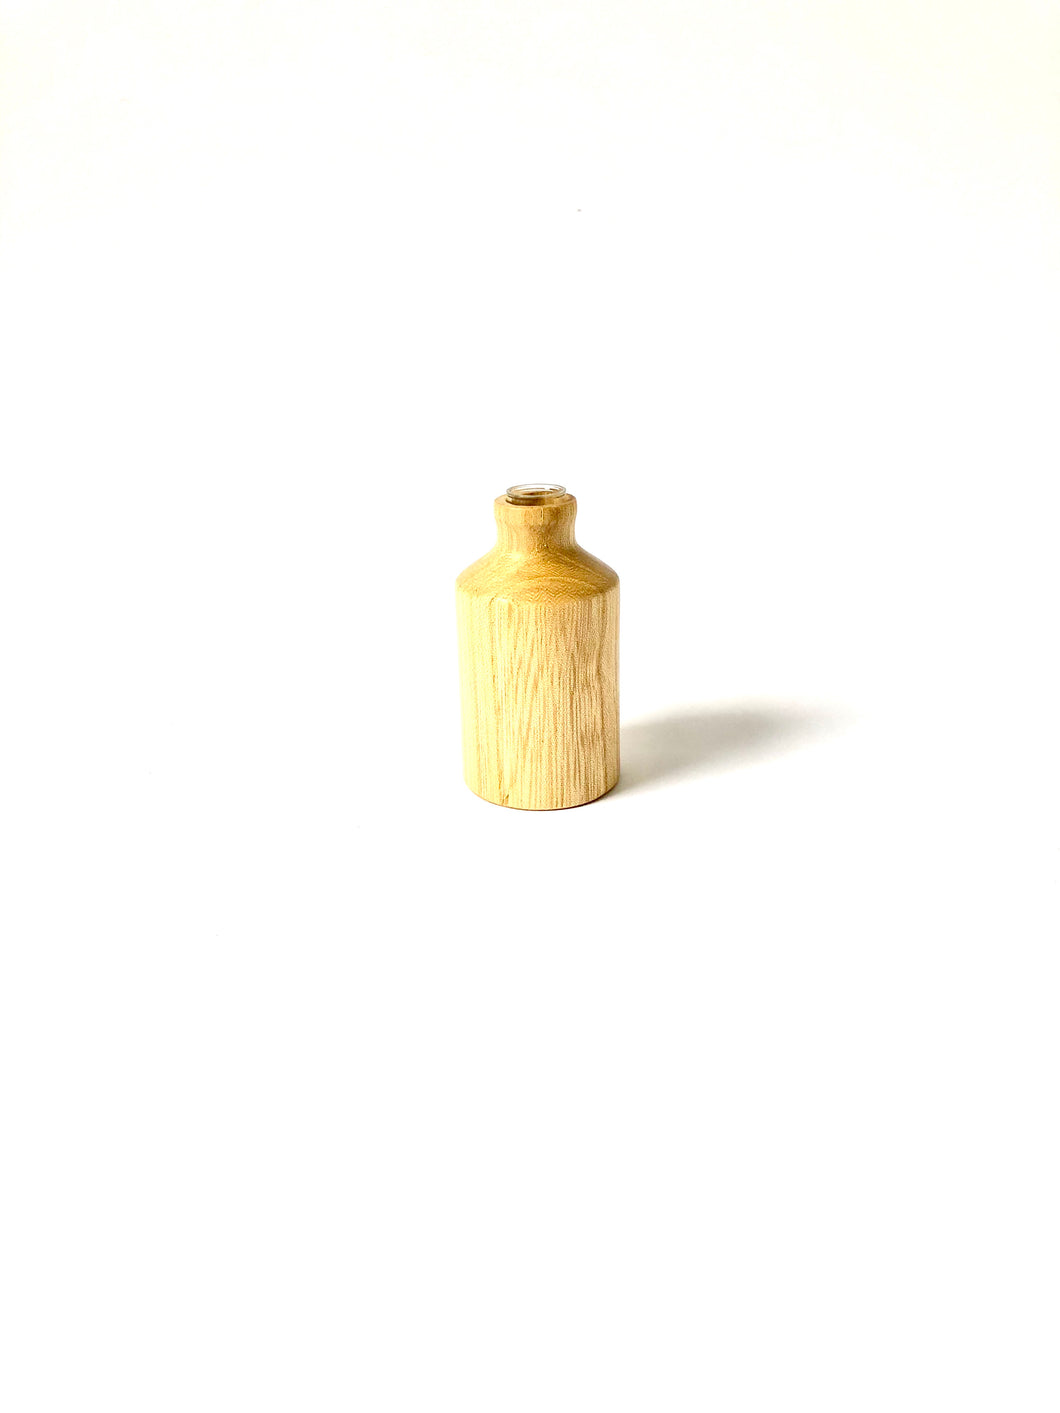 Japanese Handcrafted Wooden Miniature Vase Castor Aralia Tree